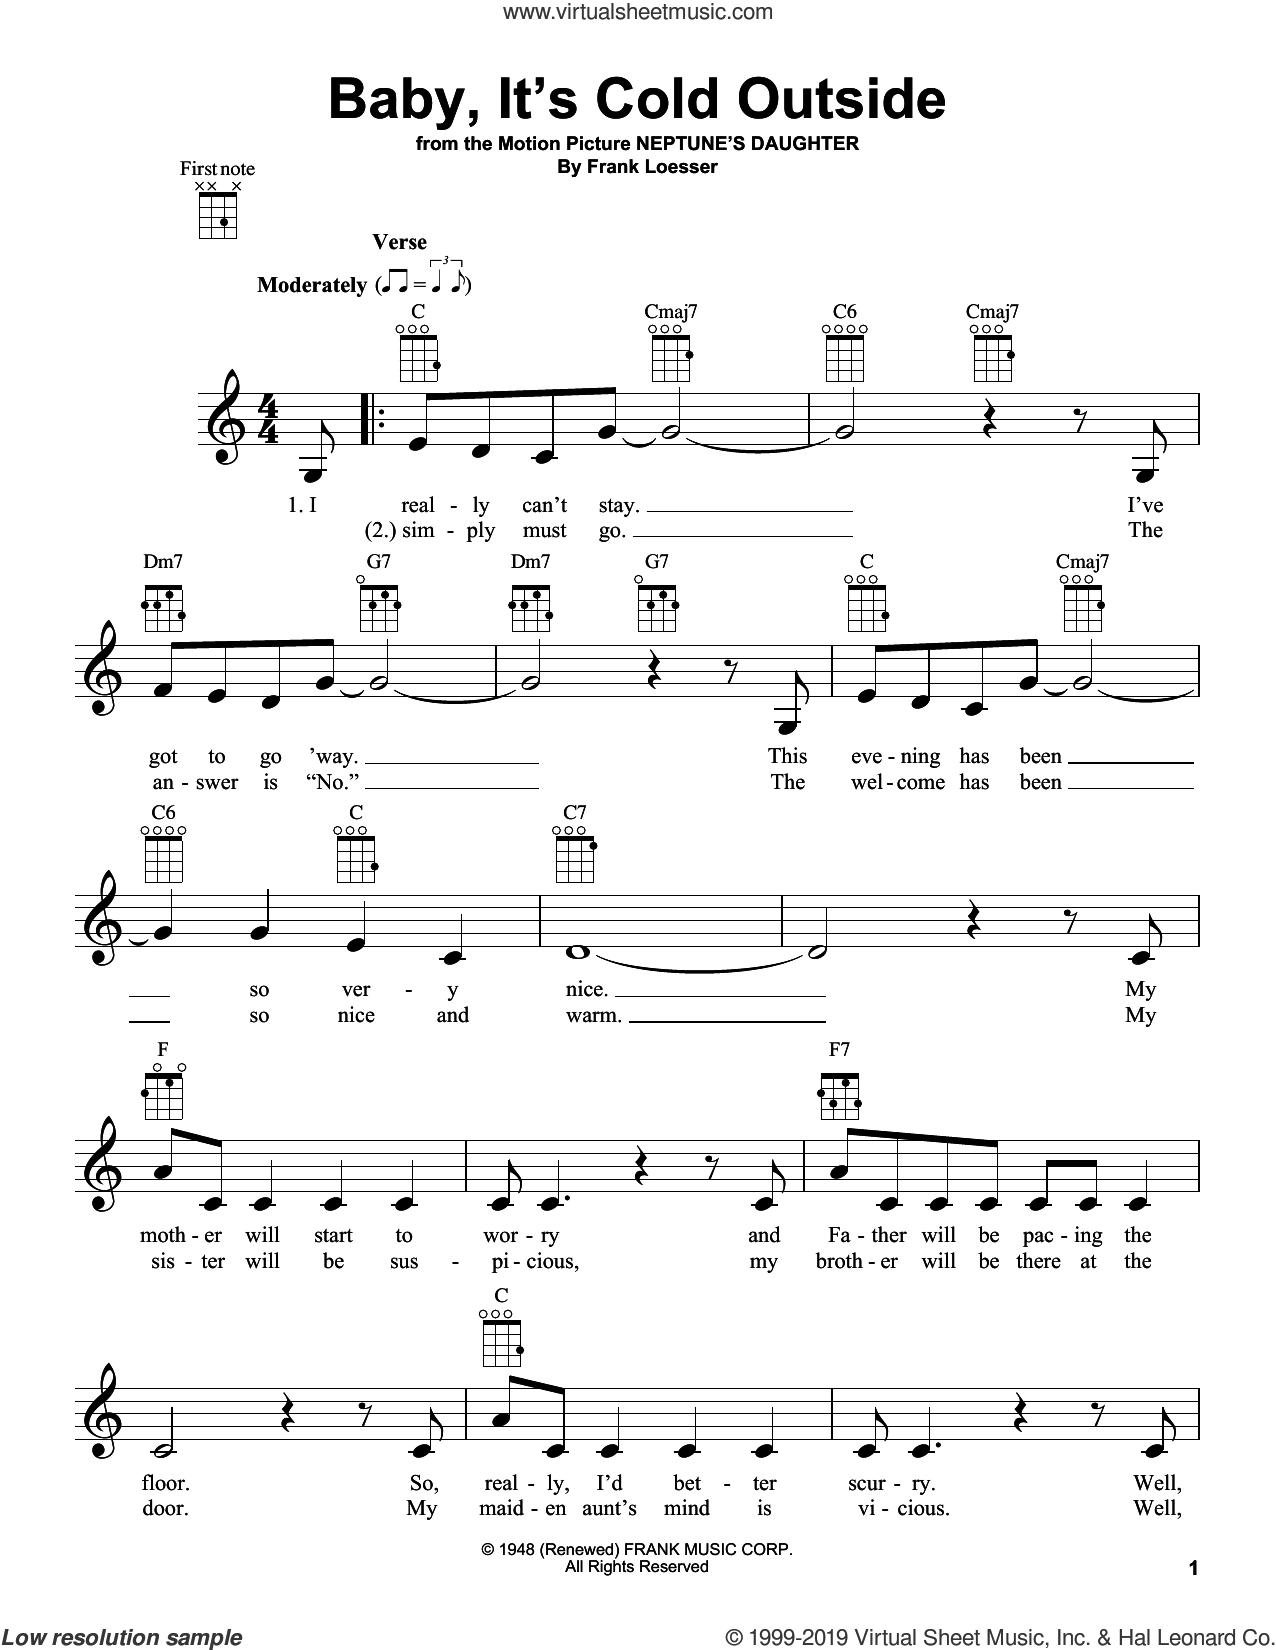 Baby, It's Cold Outside sheet music for ukulele by Frank Loesser, intermediate skill level